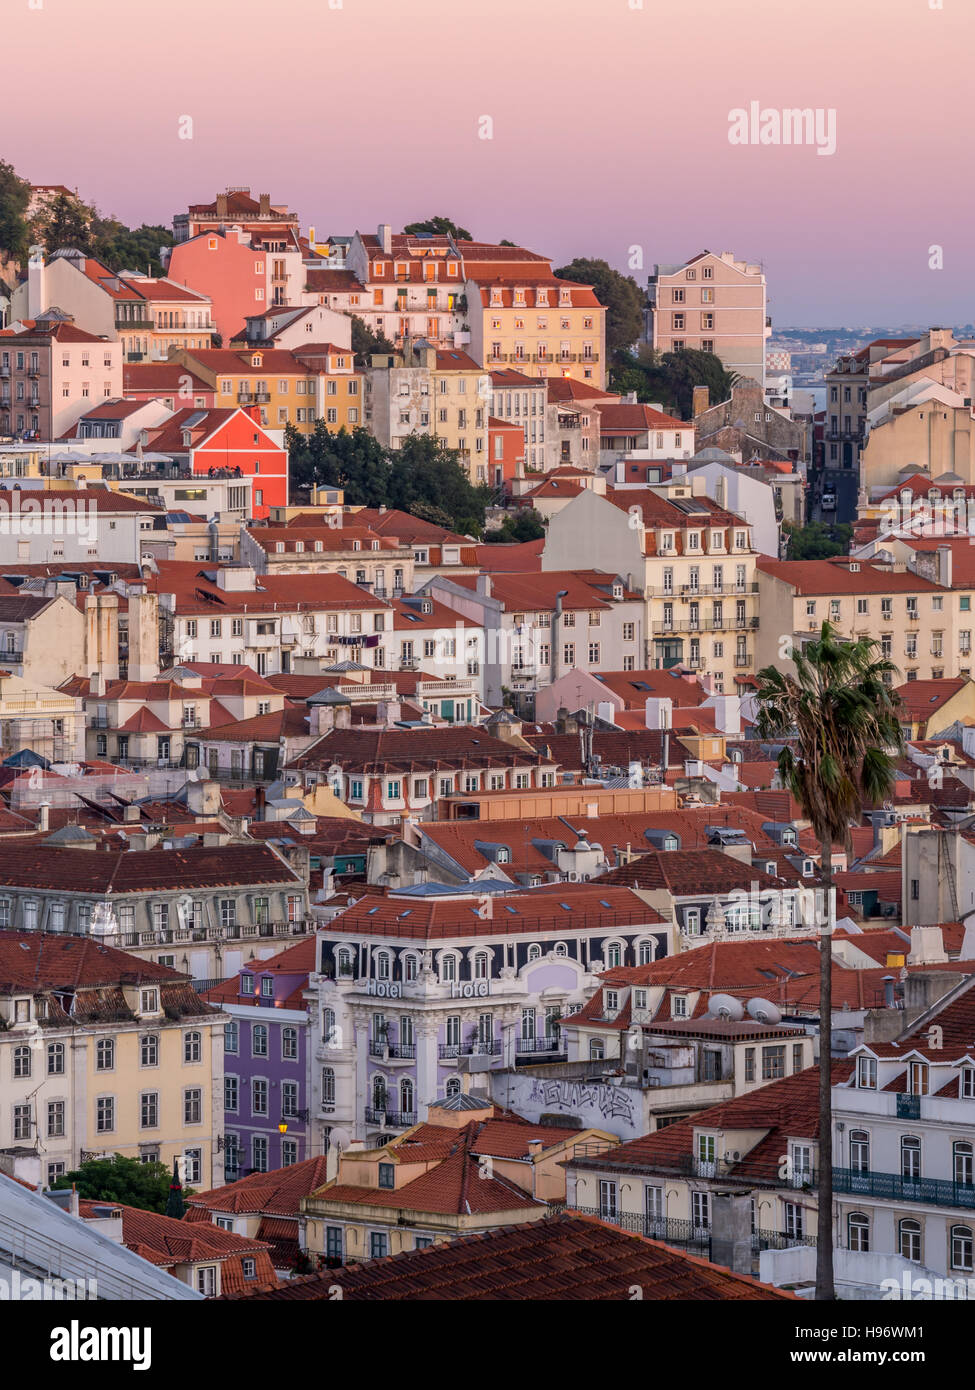 Cityscape of Lisbon, Portugal, seen from Miradouro Sao Pedro de Alcantara at sunset. - Stock Image